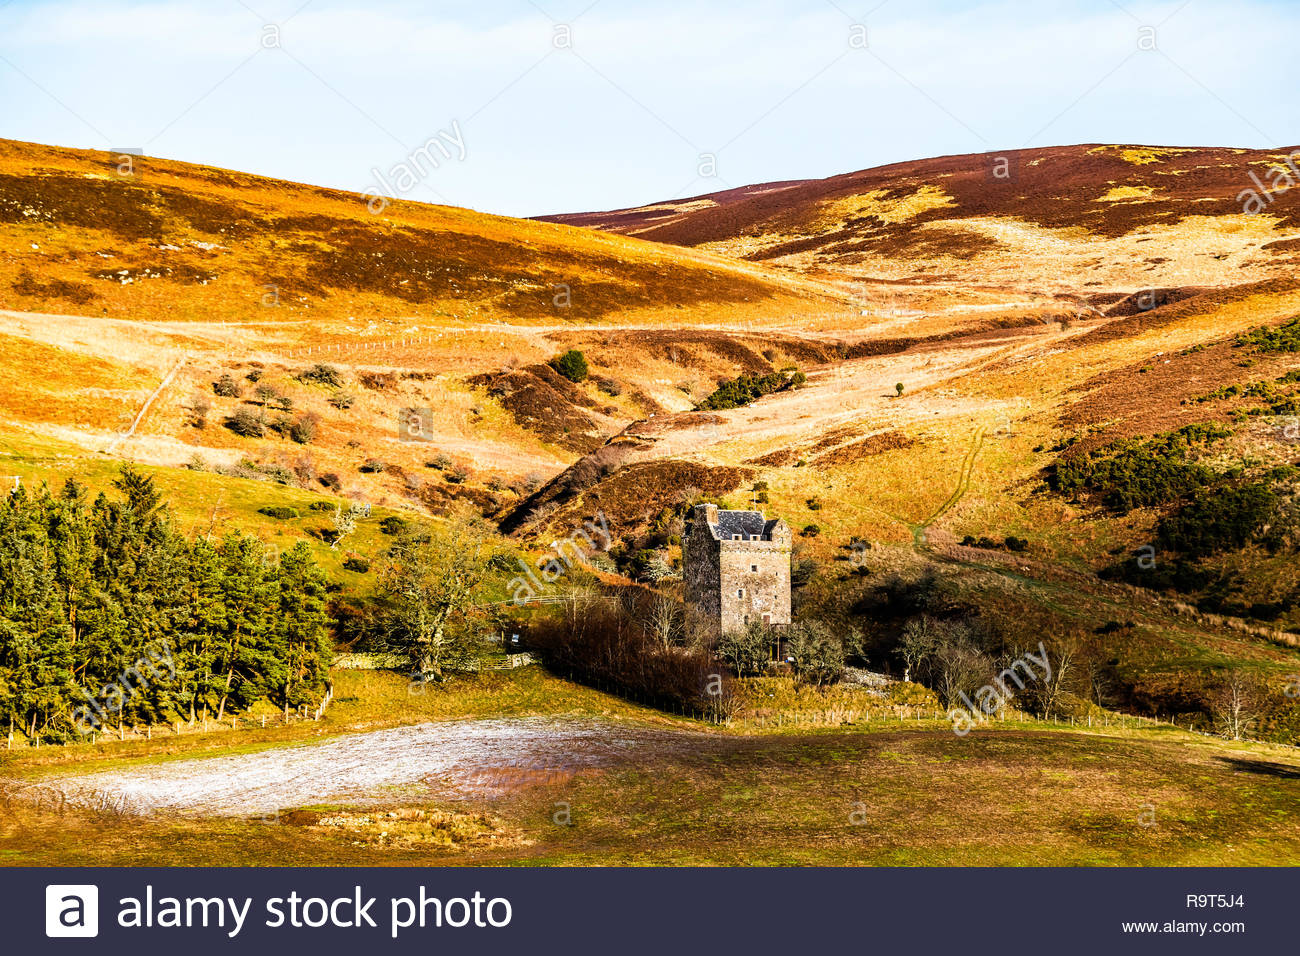 Ettrick, Selkirk, Scottish Borders, UK. 16th December 2018. Kershope Tower near Ettrick on a frosty December day. The Pele Tower, circa 16th century,  - Stock Image